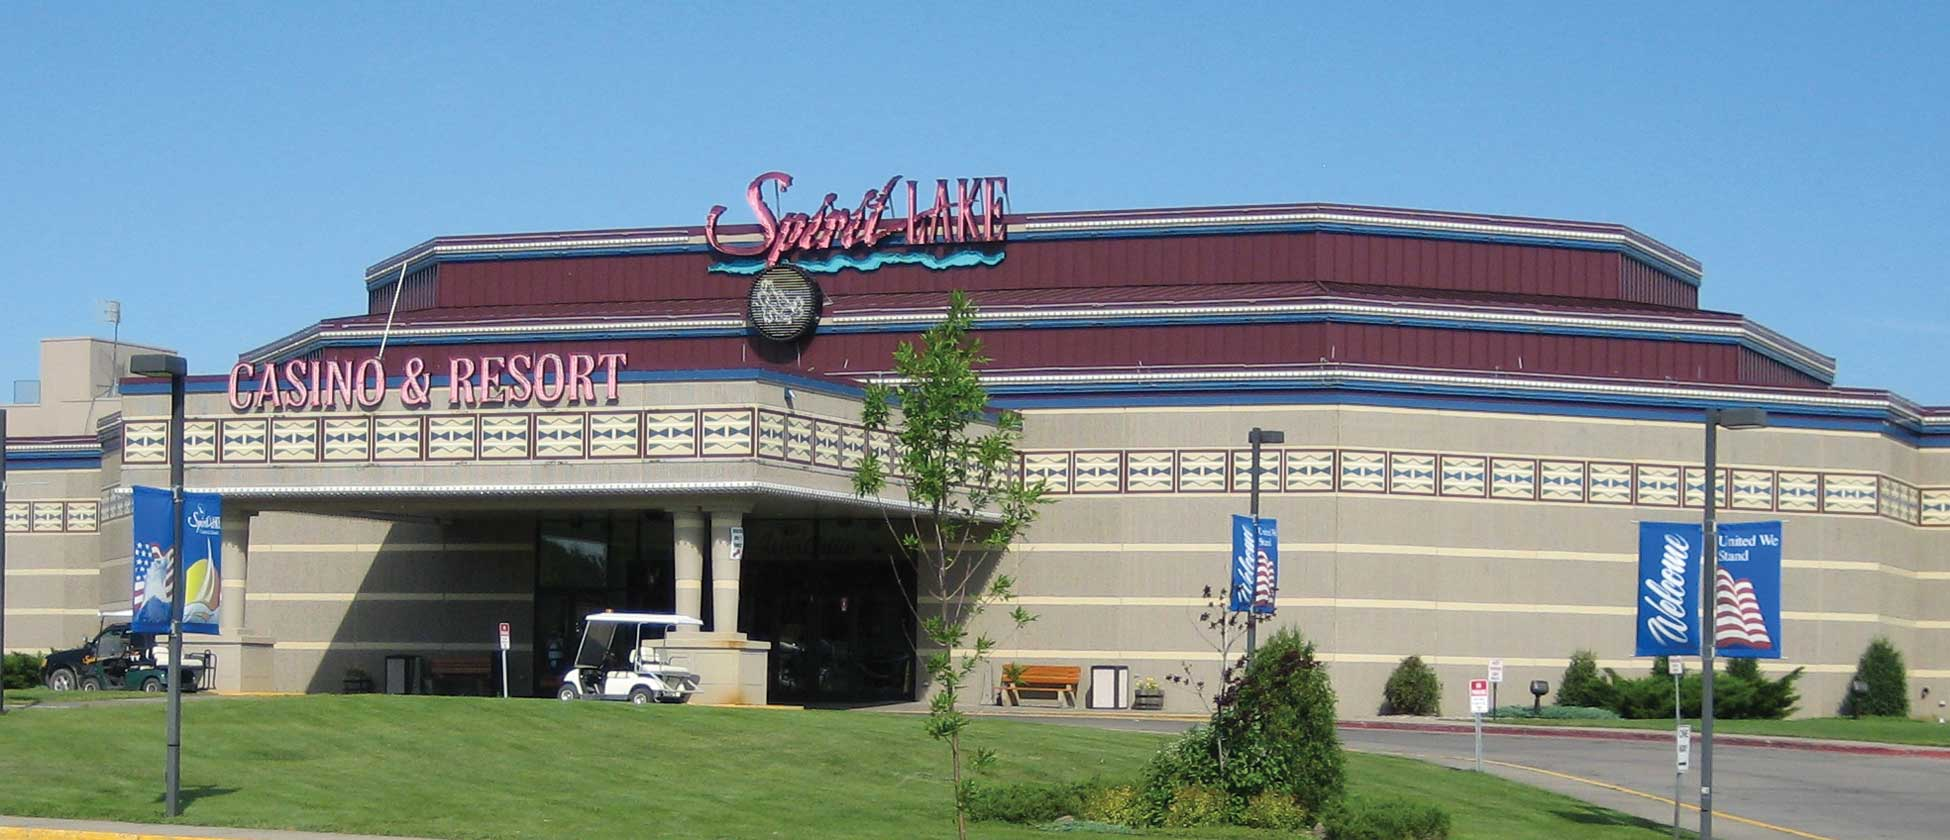 The Spirit Lake Casino and Resort south of Devils Lake.